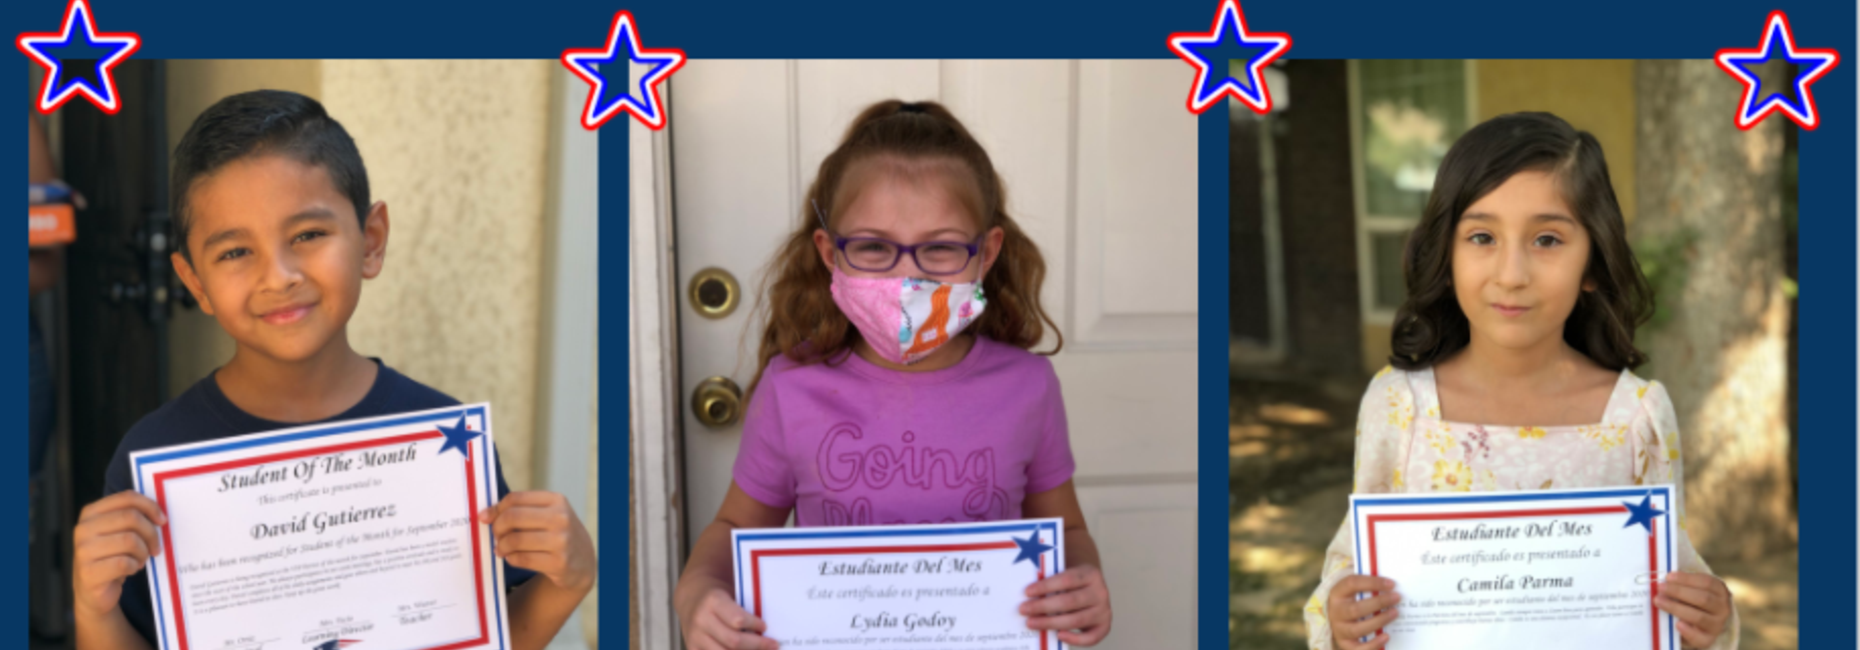 SEPTEMBER PATRIOT OF THE MONTH